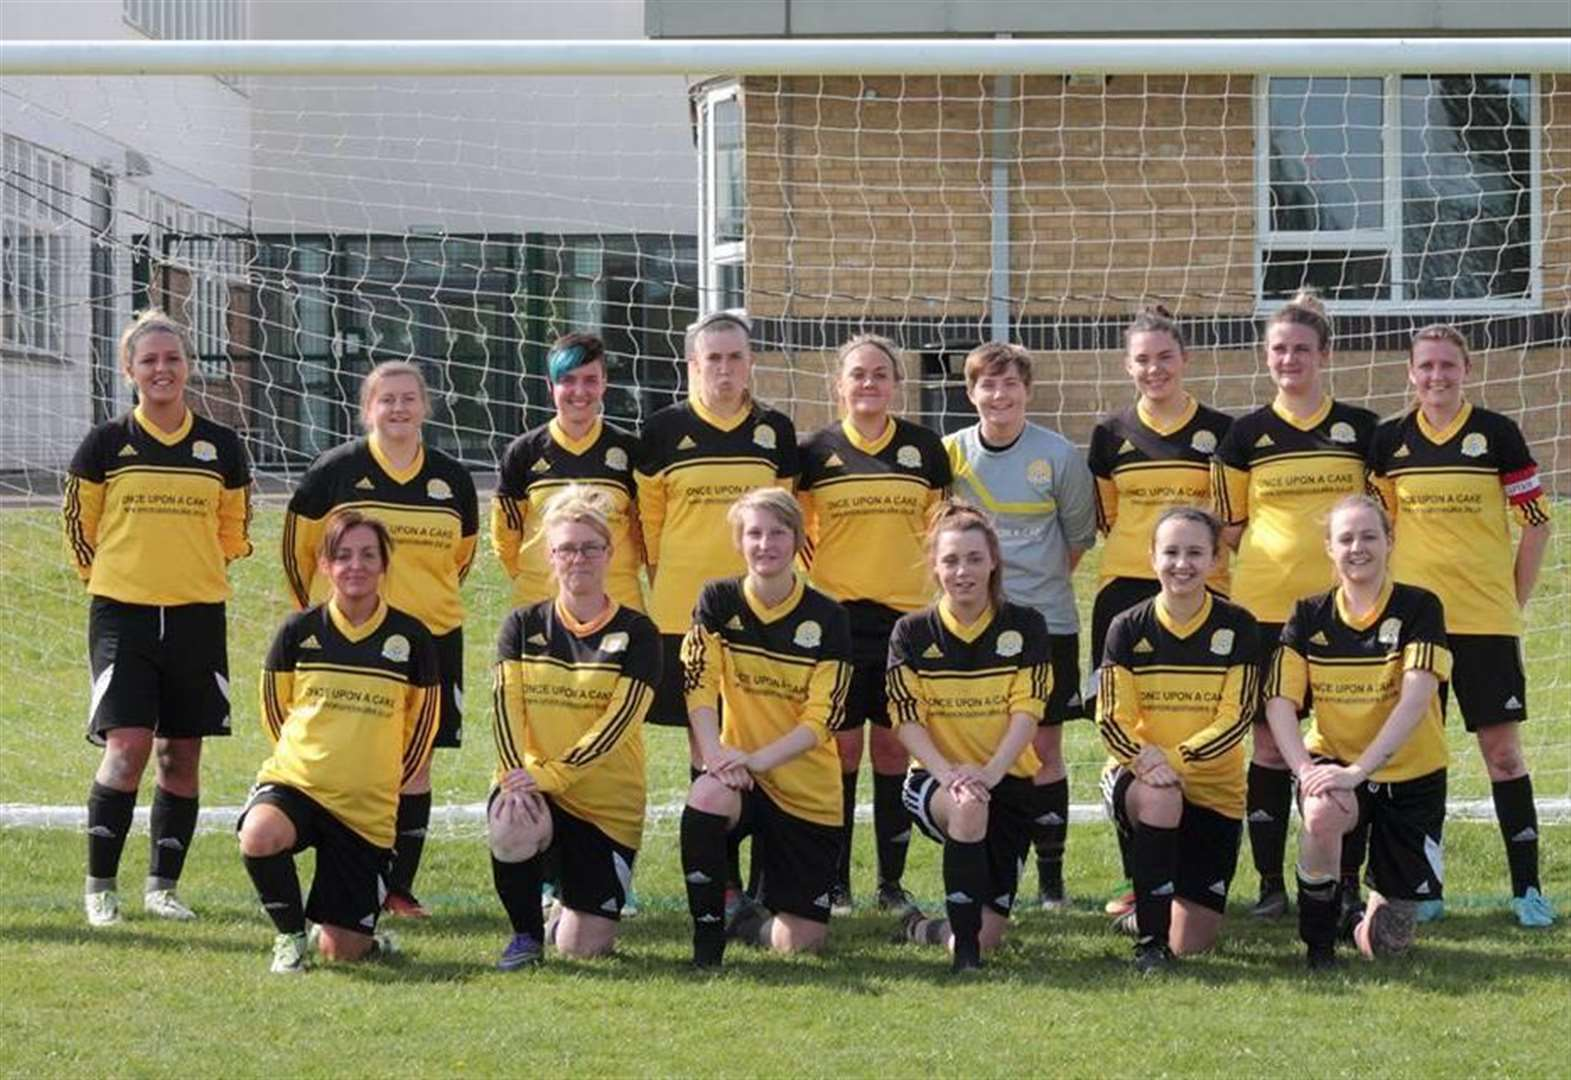 Football: March Town Ladies defeated at Histon after Louise Barbour gives them early lead